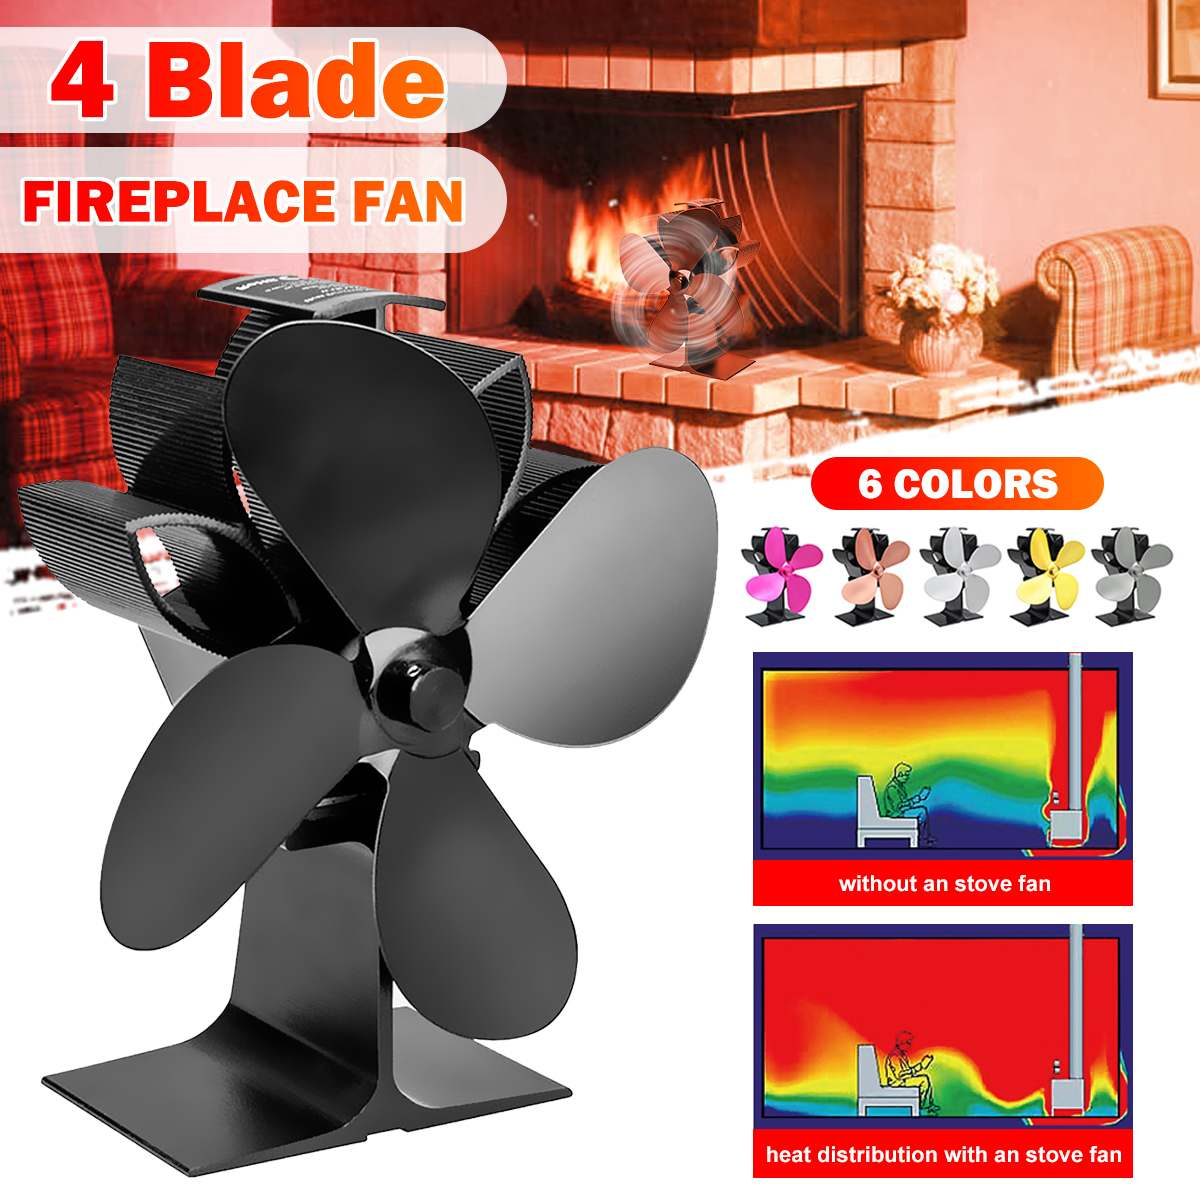 Multicolor Fireplace 4 Blade Heat Powered Stove Fan Komin Log Wood Burner Eco Silent Fan Home Efficient Heat Distribution